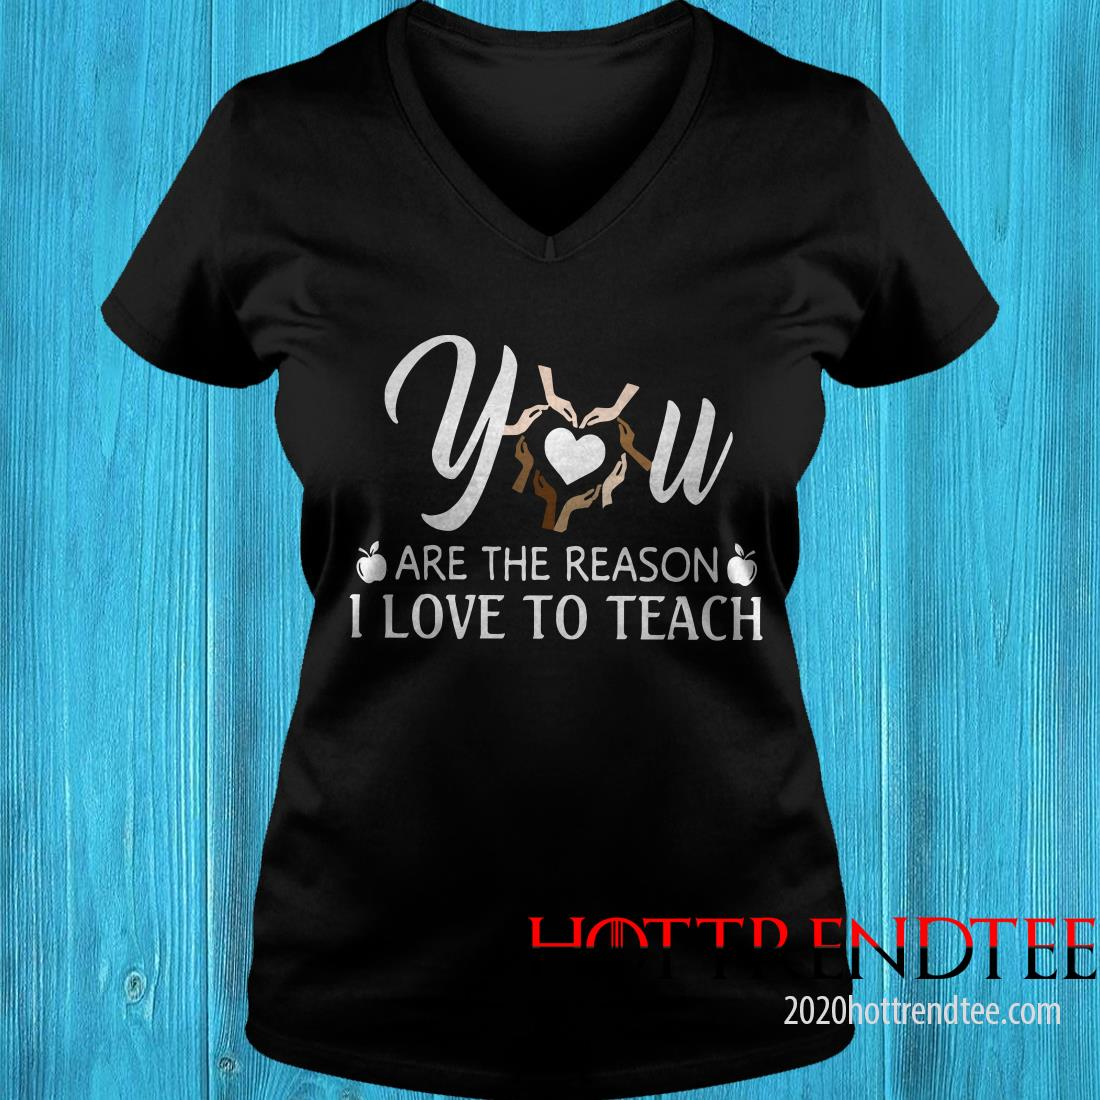 You Are The Reason I Love To Teach Women's T-Shirt